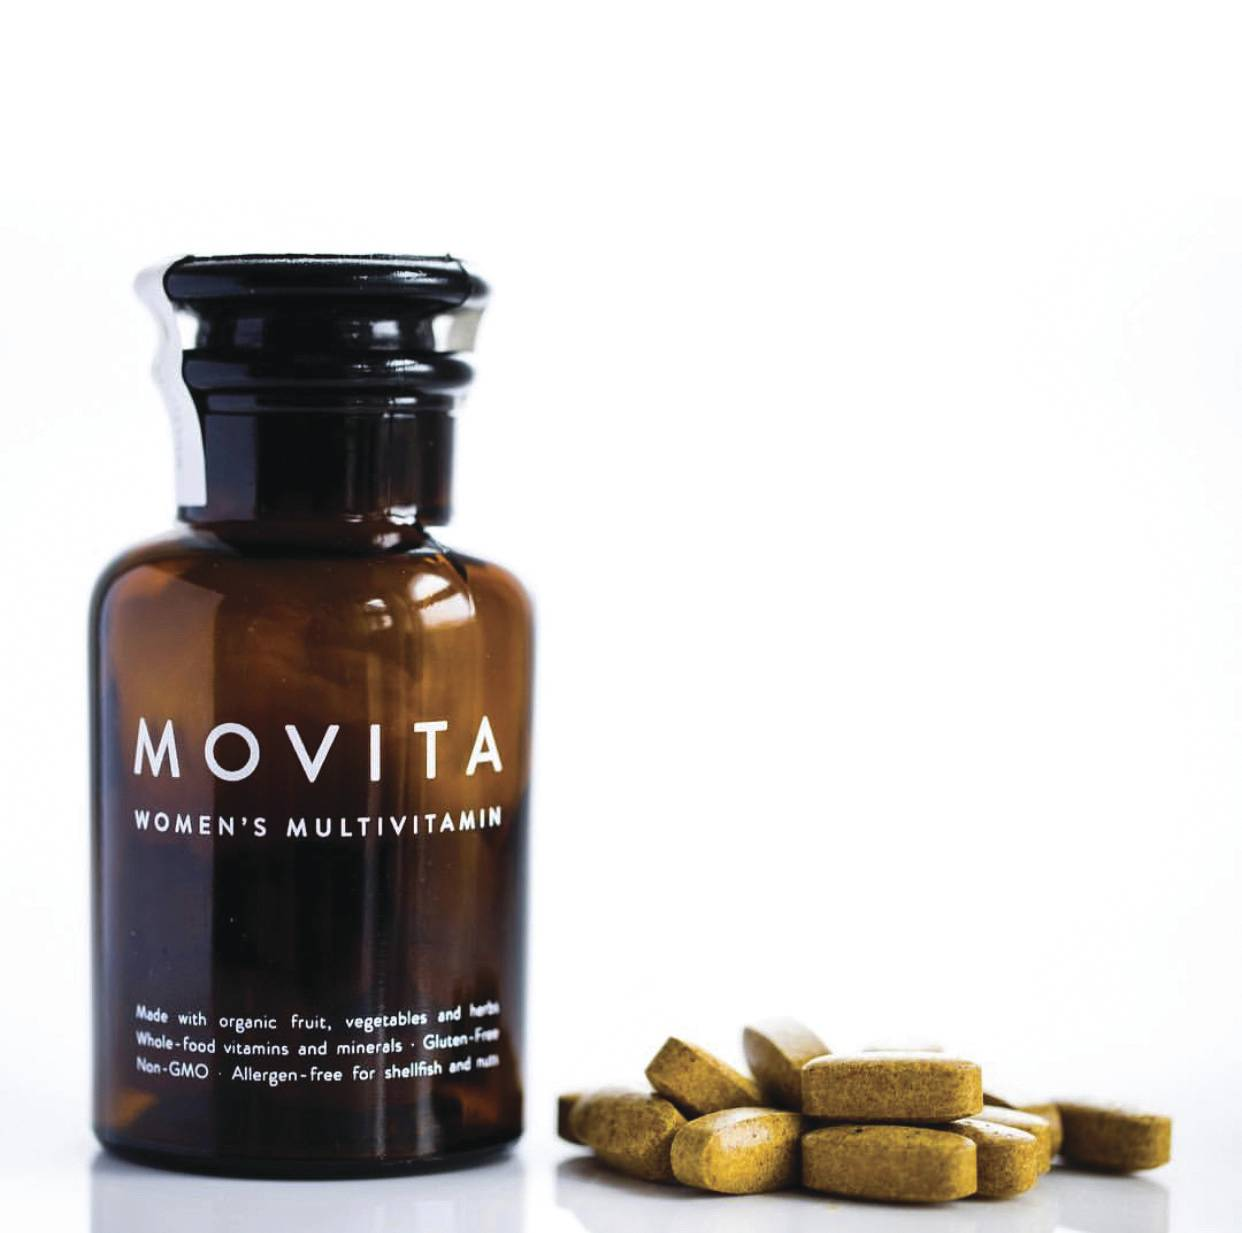 MovitaWomensMultivitamin.jpg